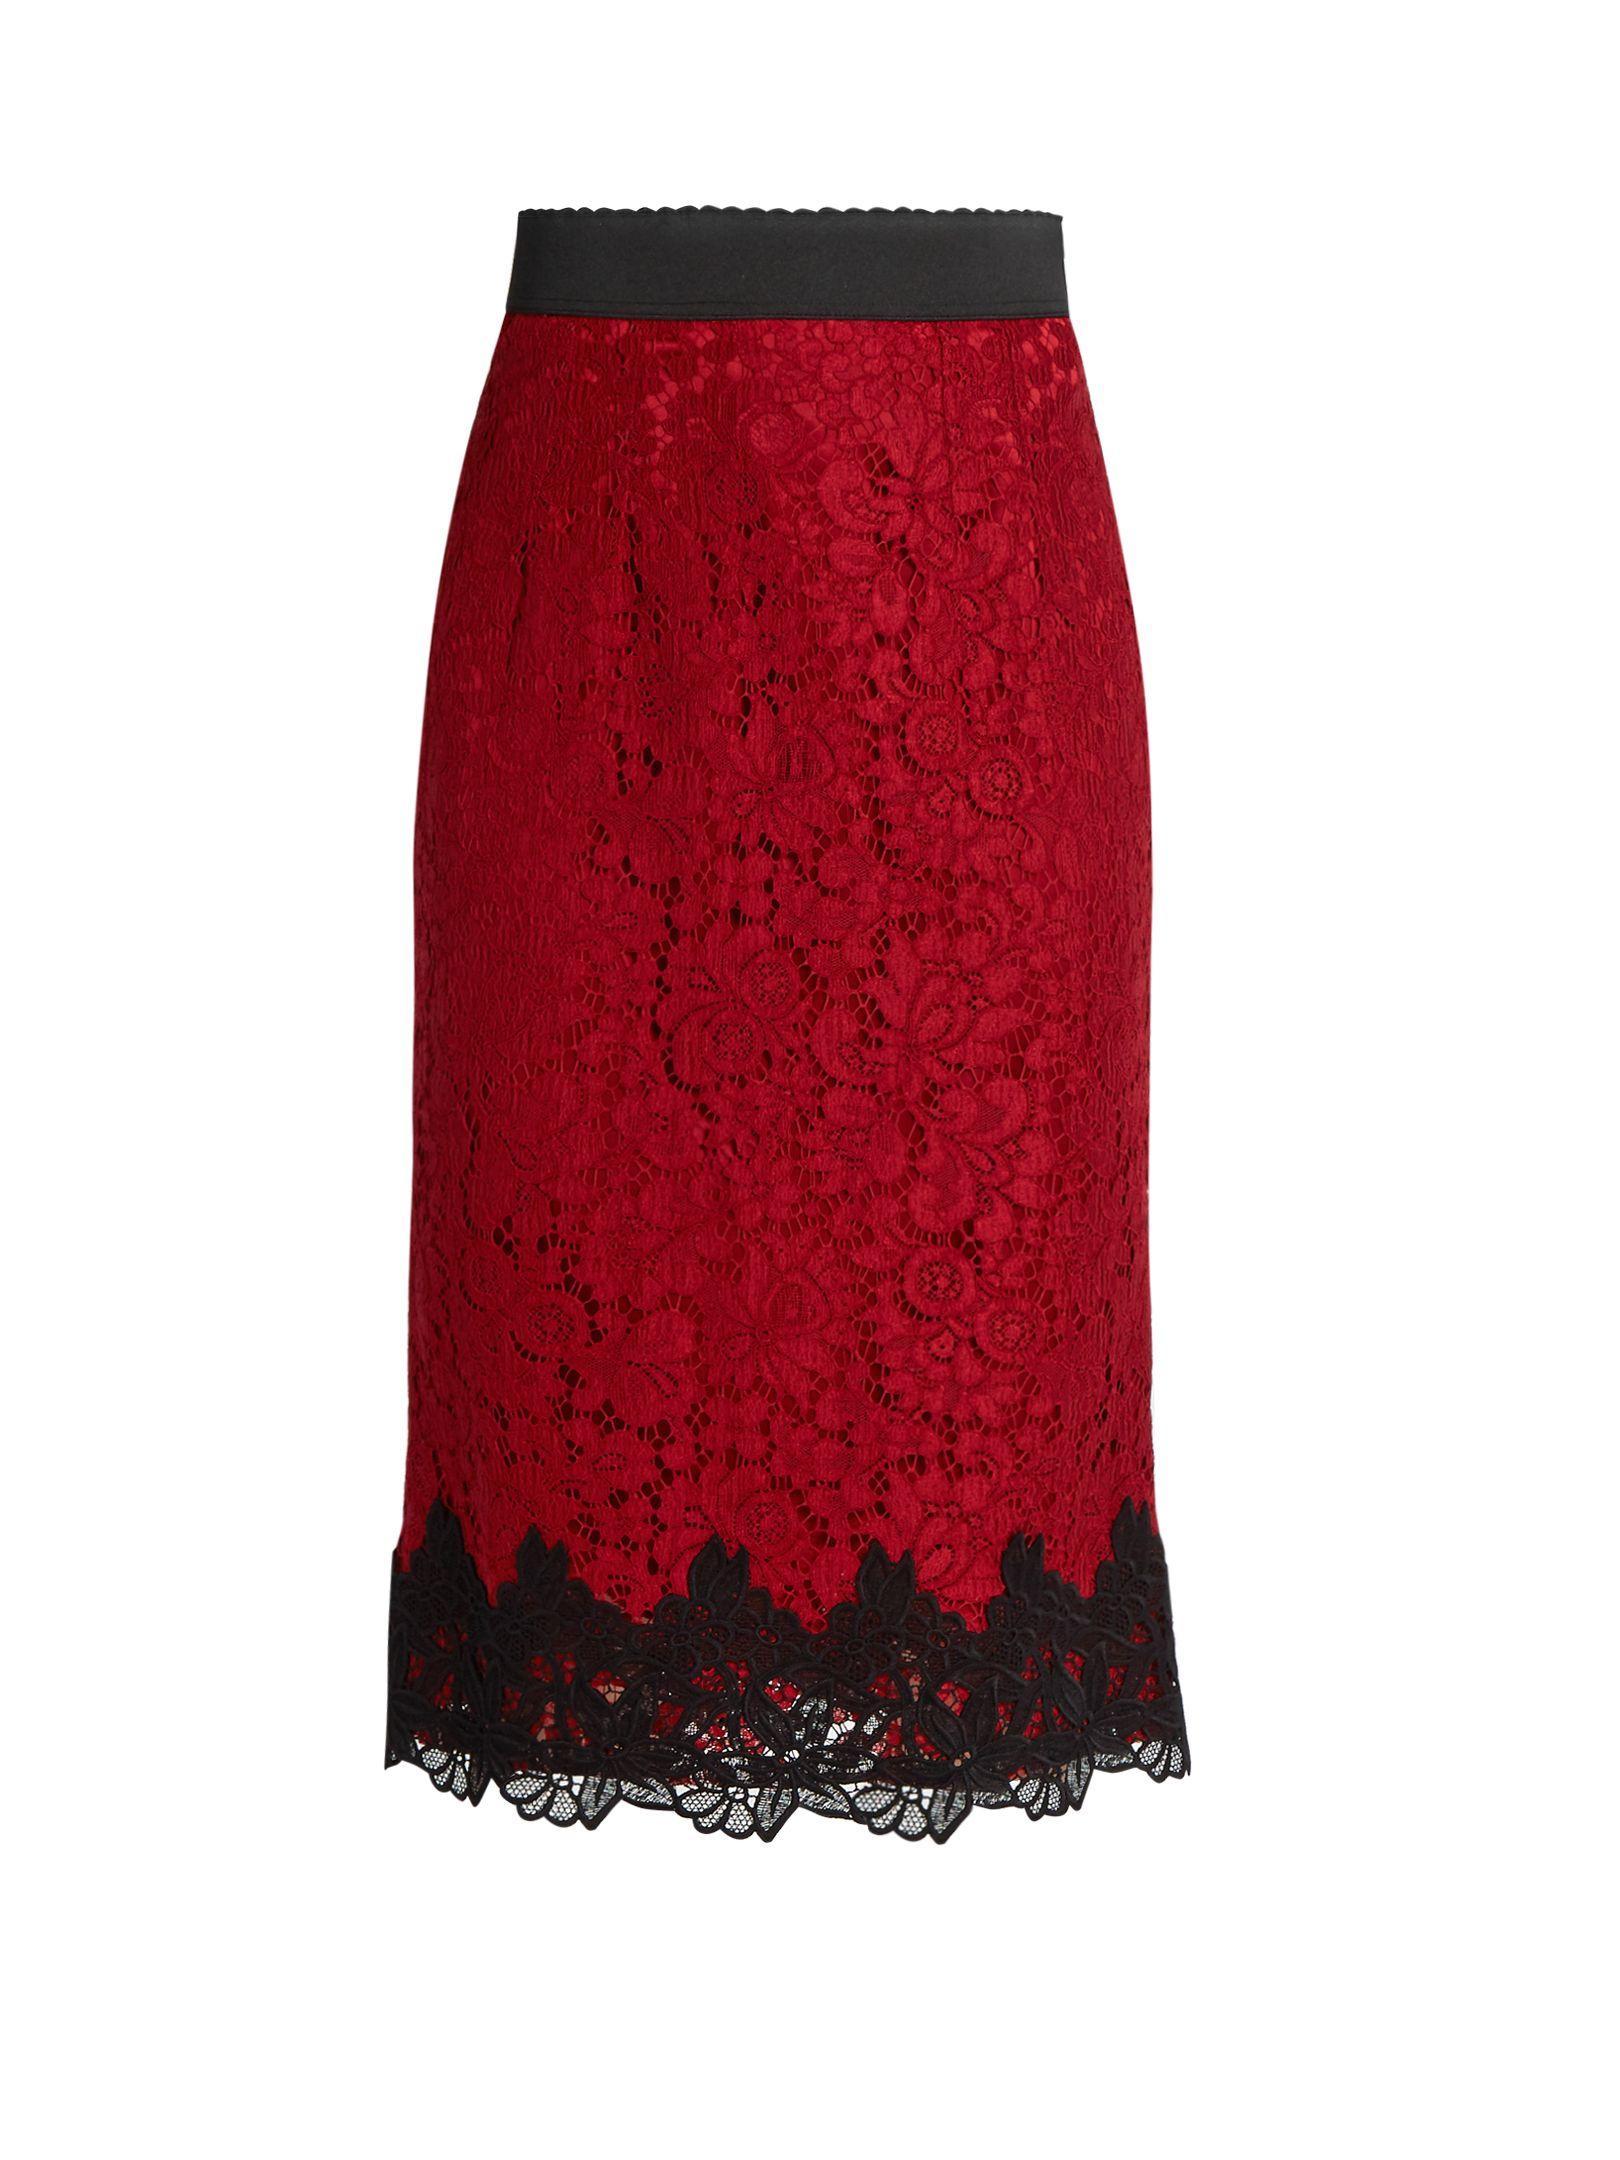 2ab93dc2b DOLCE & GABBANA Cordonetto-lace pencil skirt | Dresses in 2019 ...